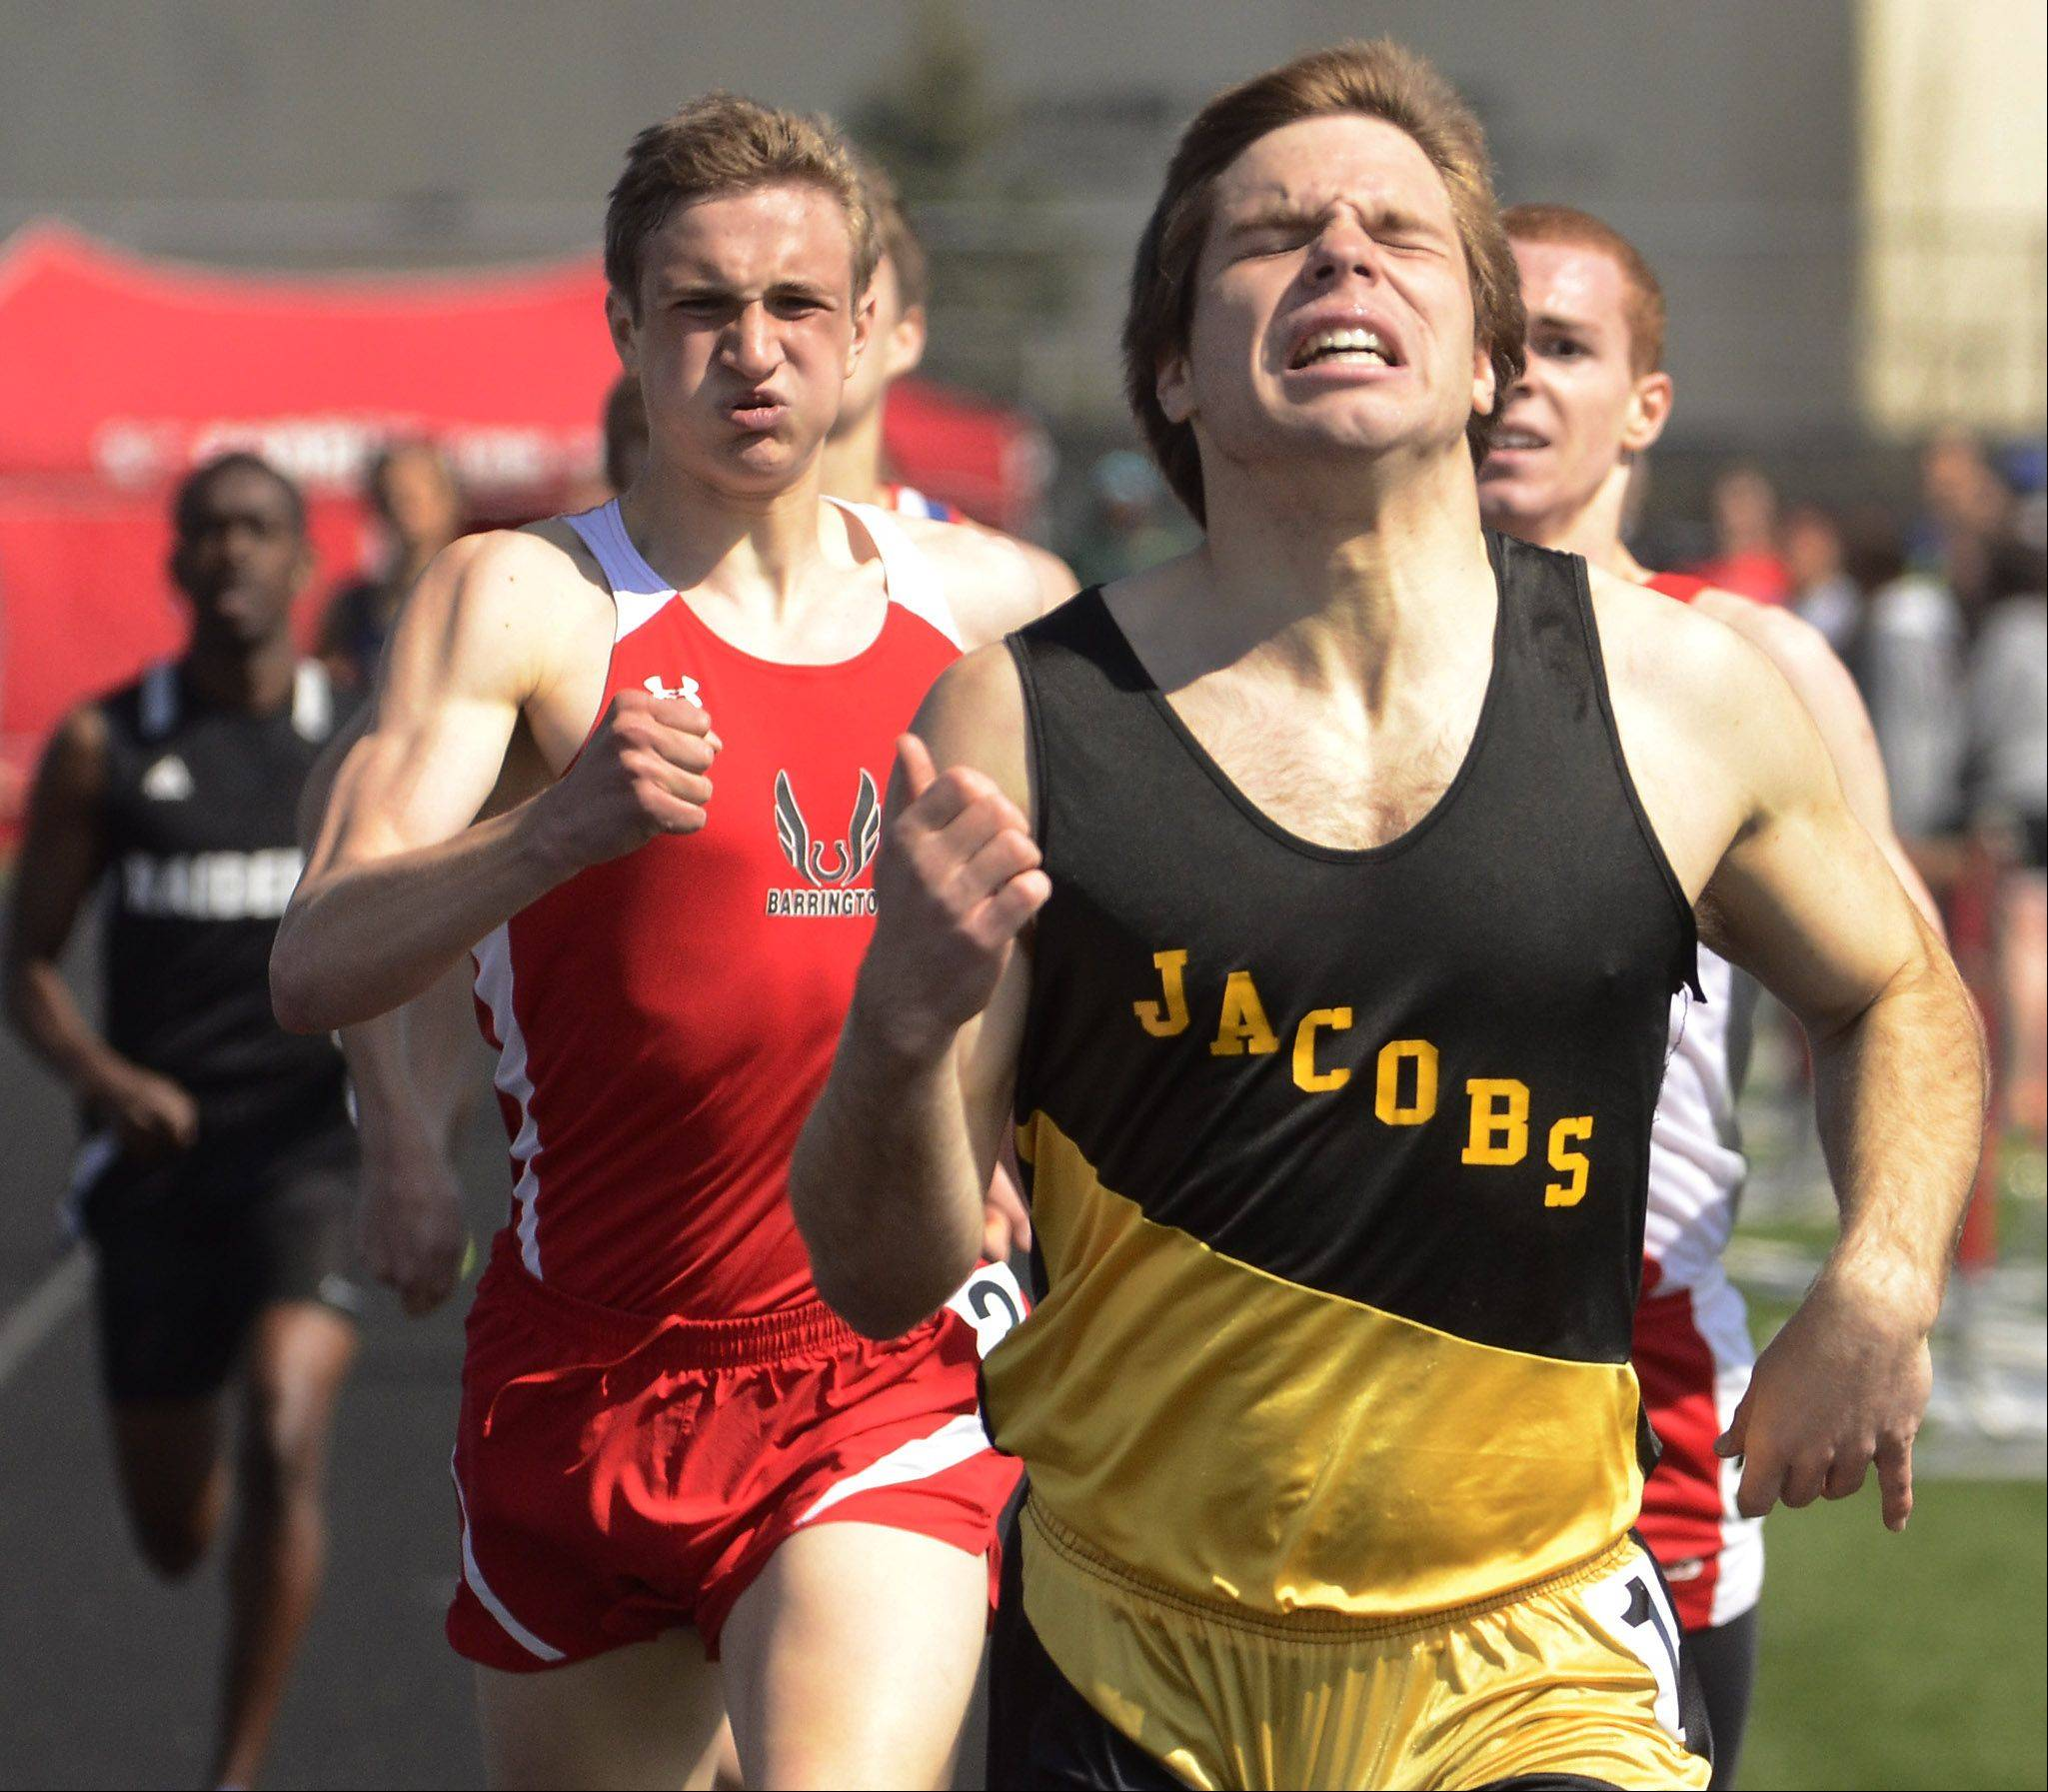 Nick Matysek of Jacobs wins the 800 run at the Palatine Relays.